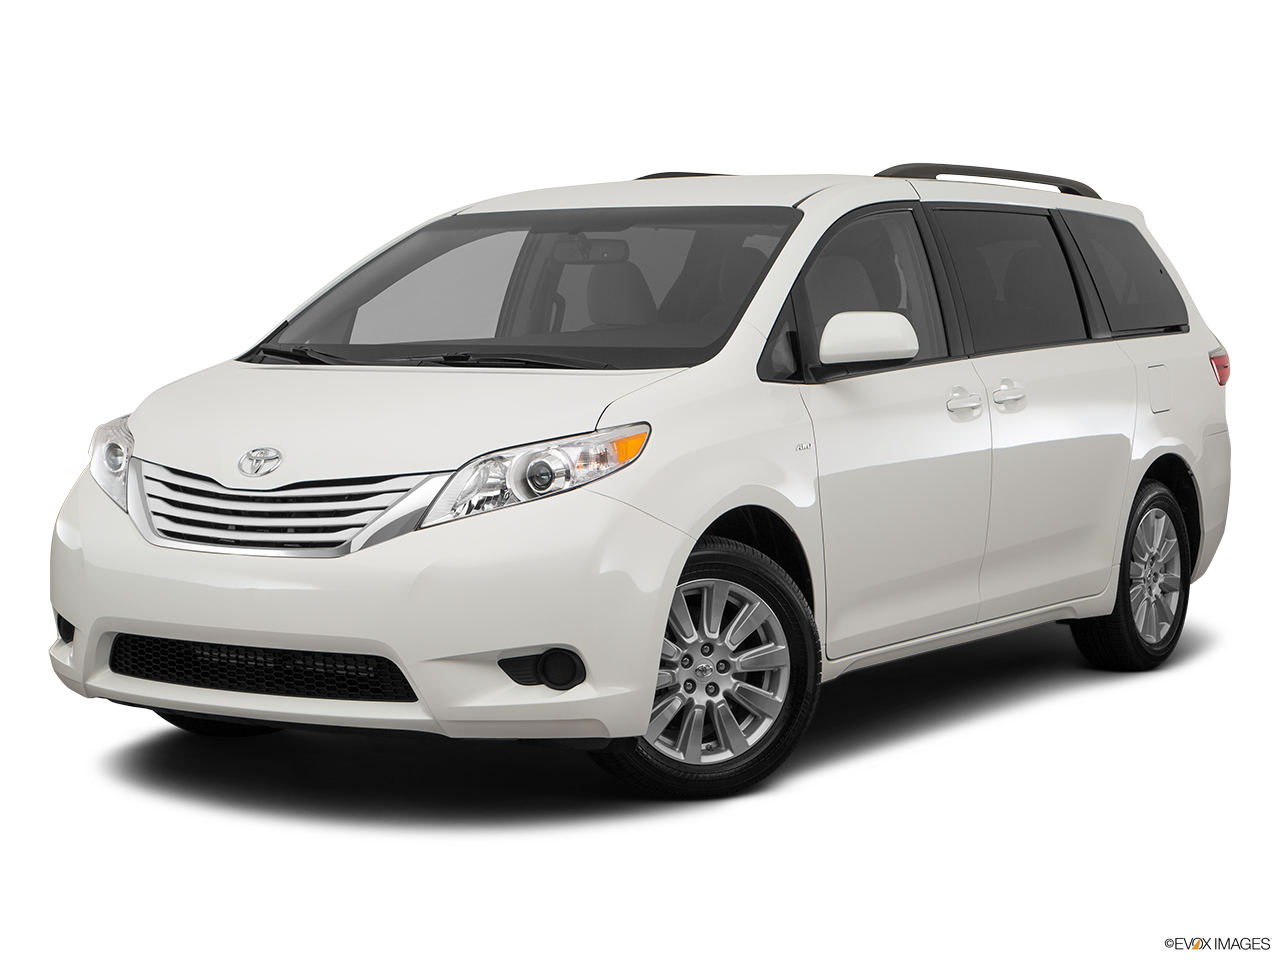 Test Drive A 2017 Toyota Sienna at Moss Bros Toyota of Moreno Valley in Moreno Valley